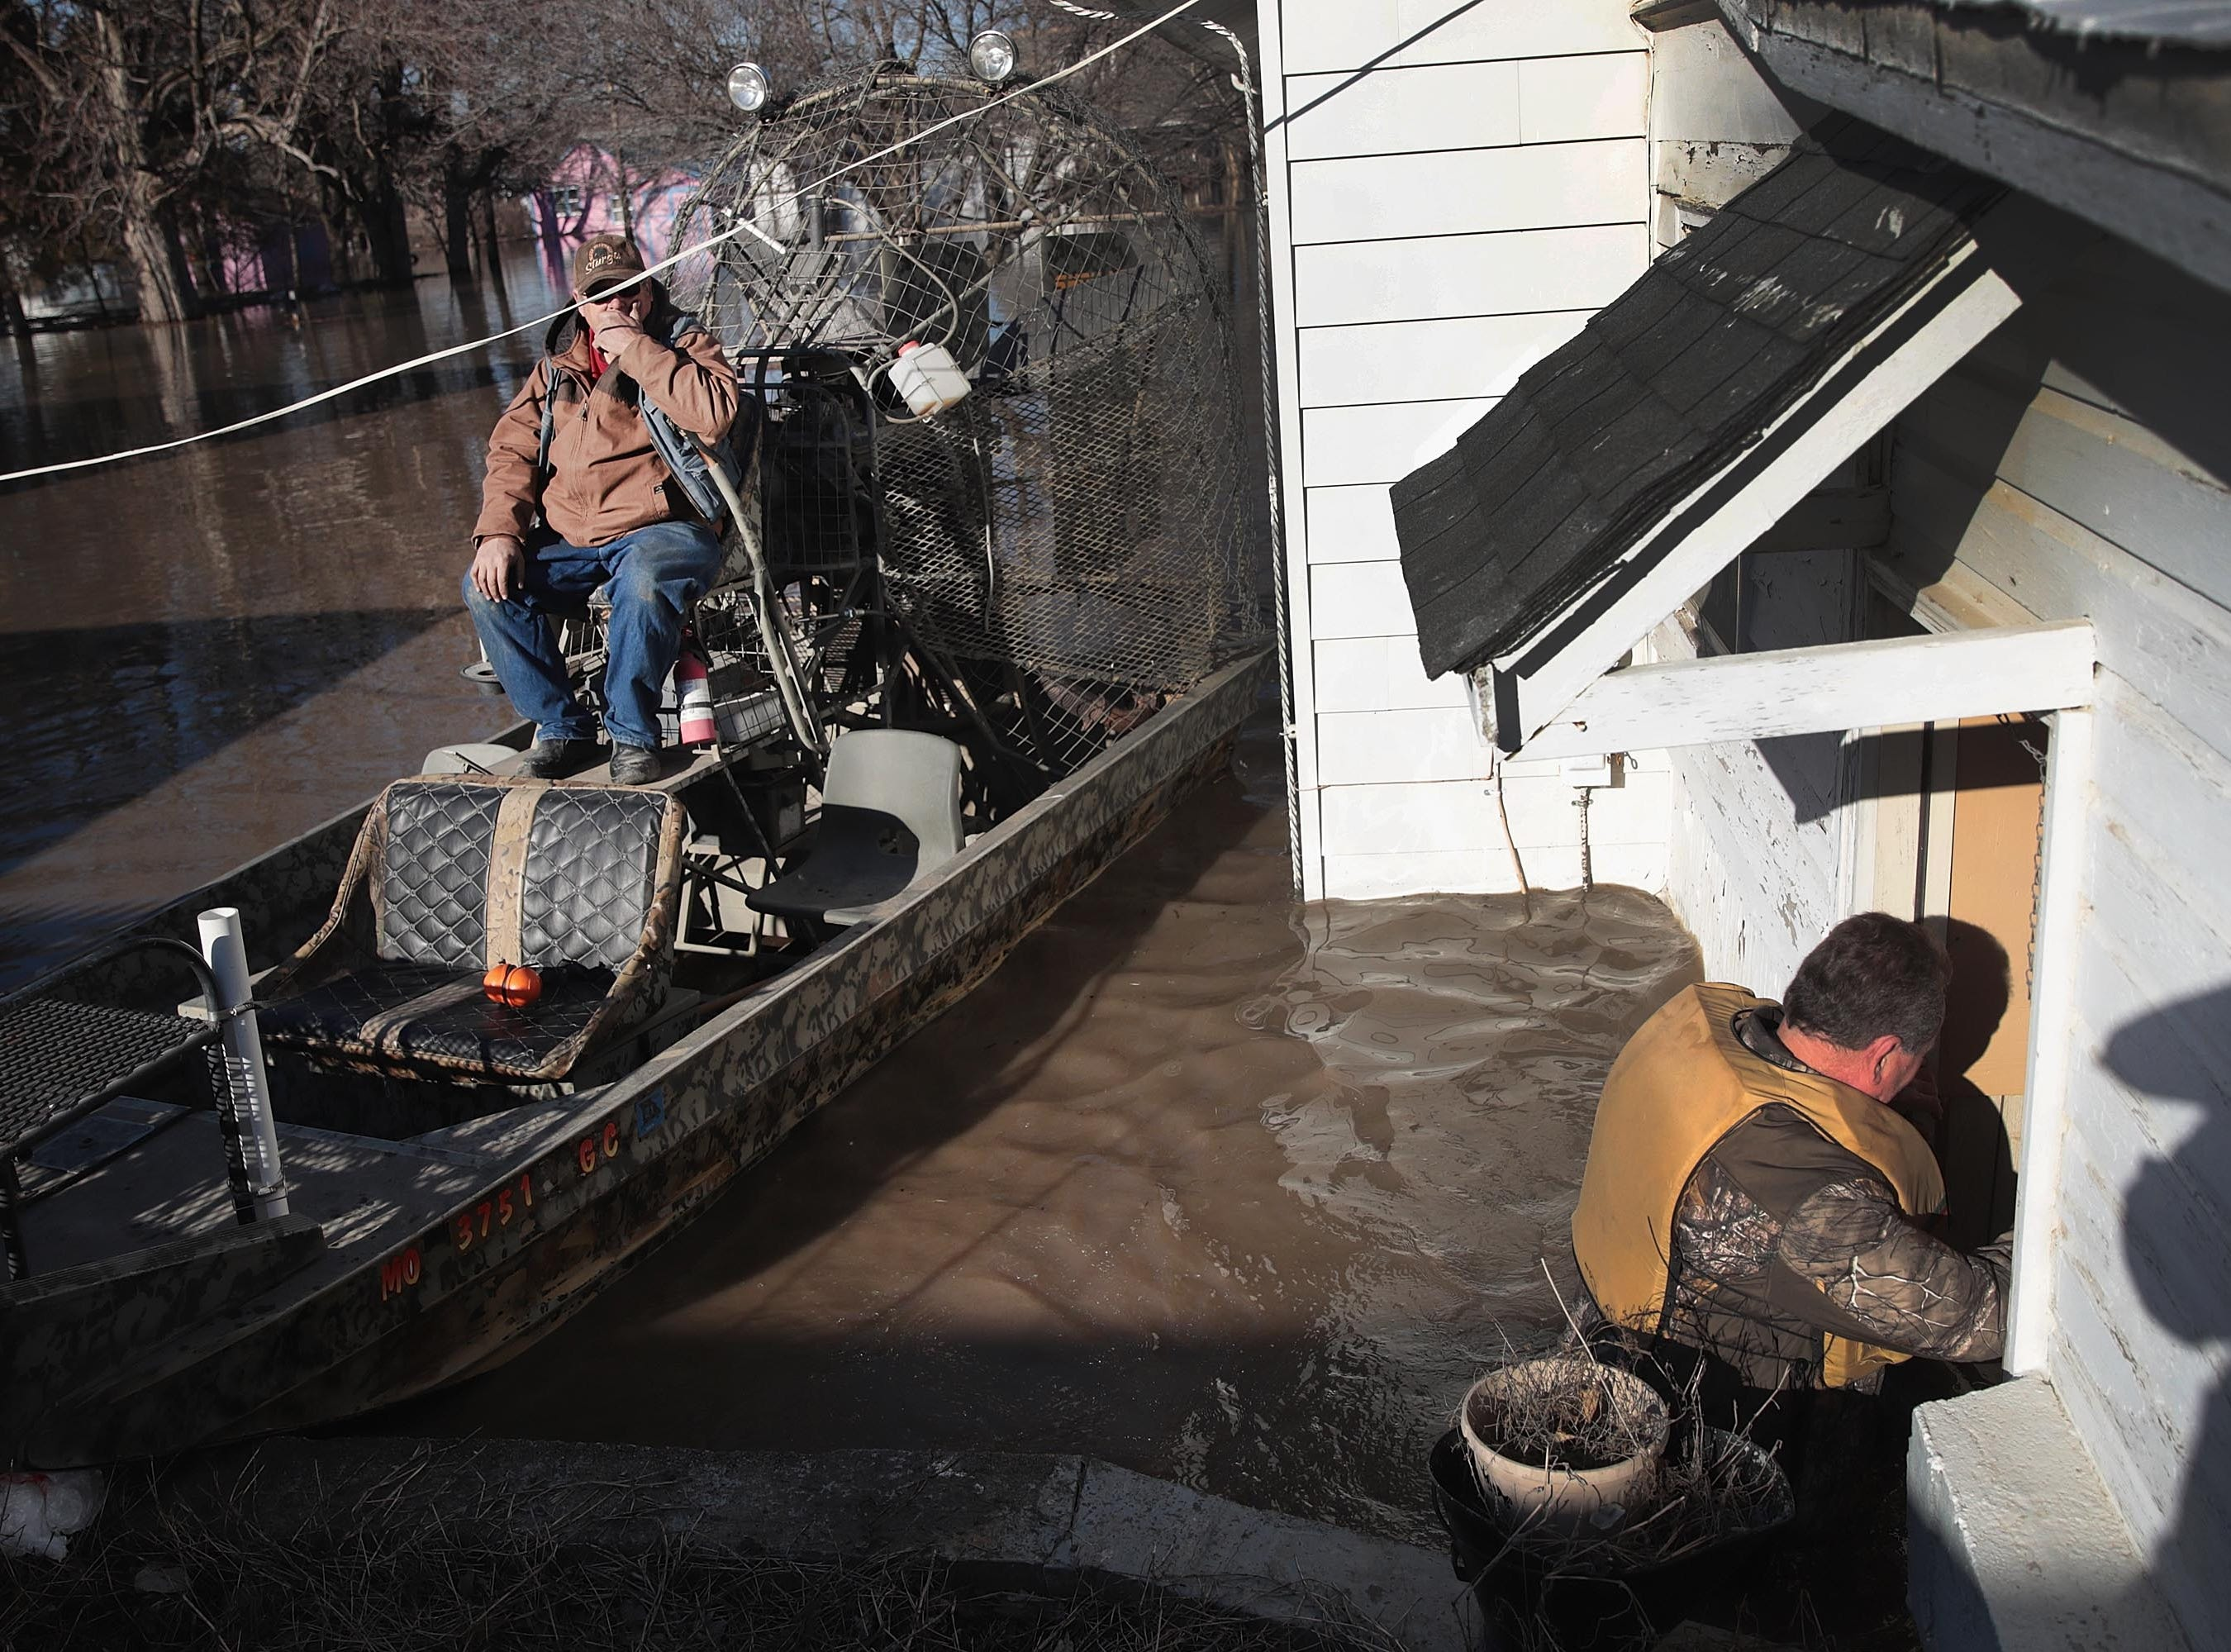 Rick Johnson, left, helps Larry Whetsel recovers possessions from his flooded home on March 21, 2019 in Craig, Missouri.